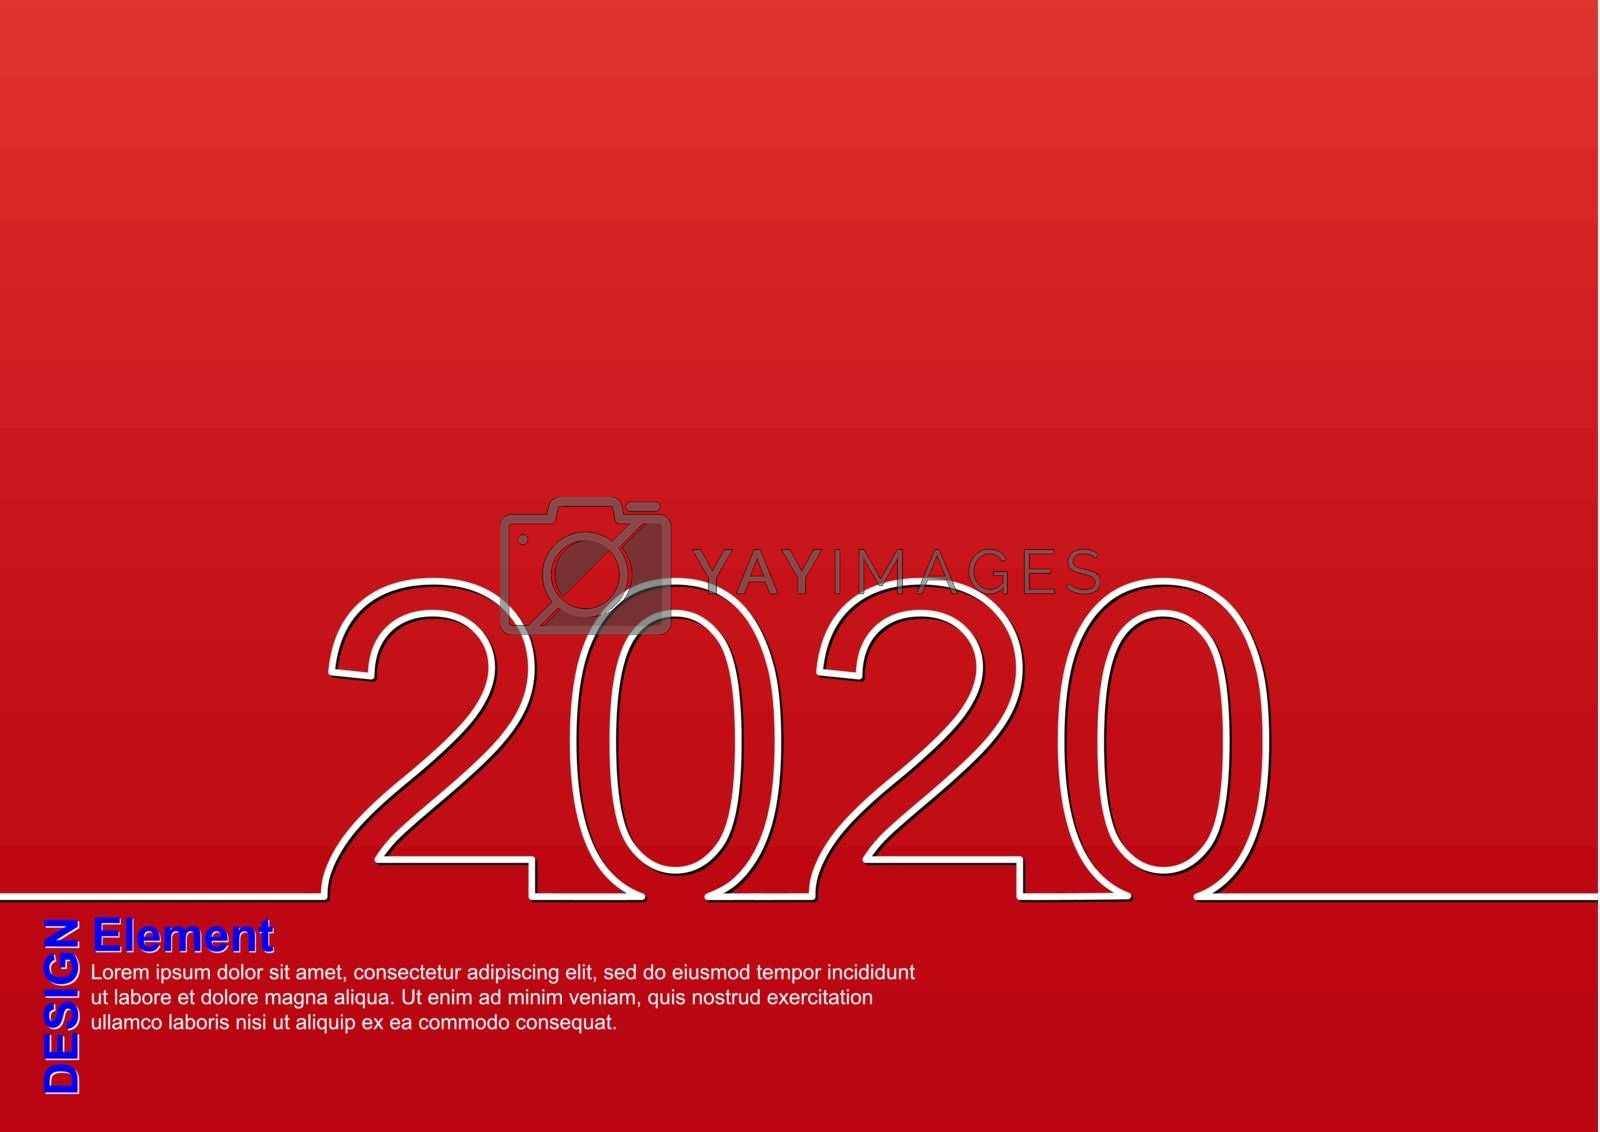 Holiday greetings with the new year 2020